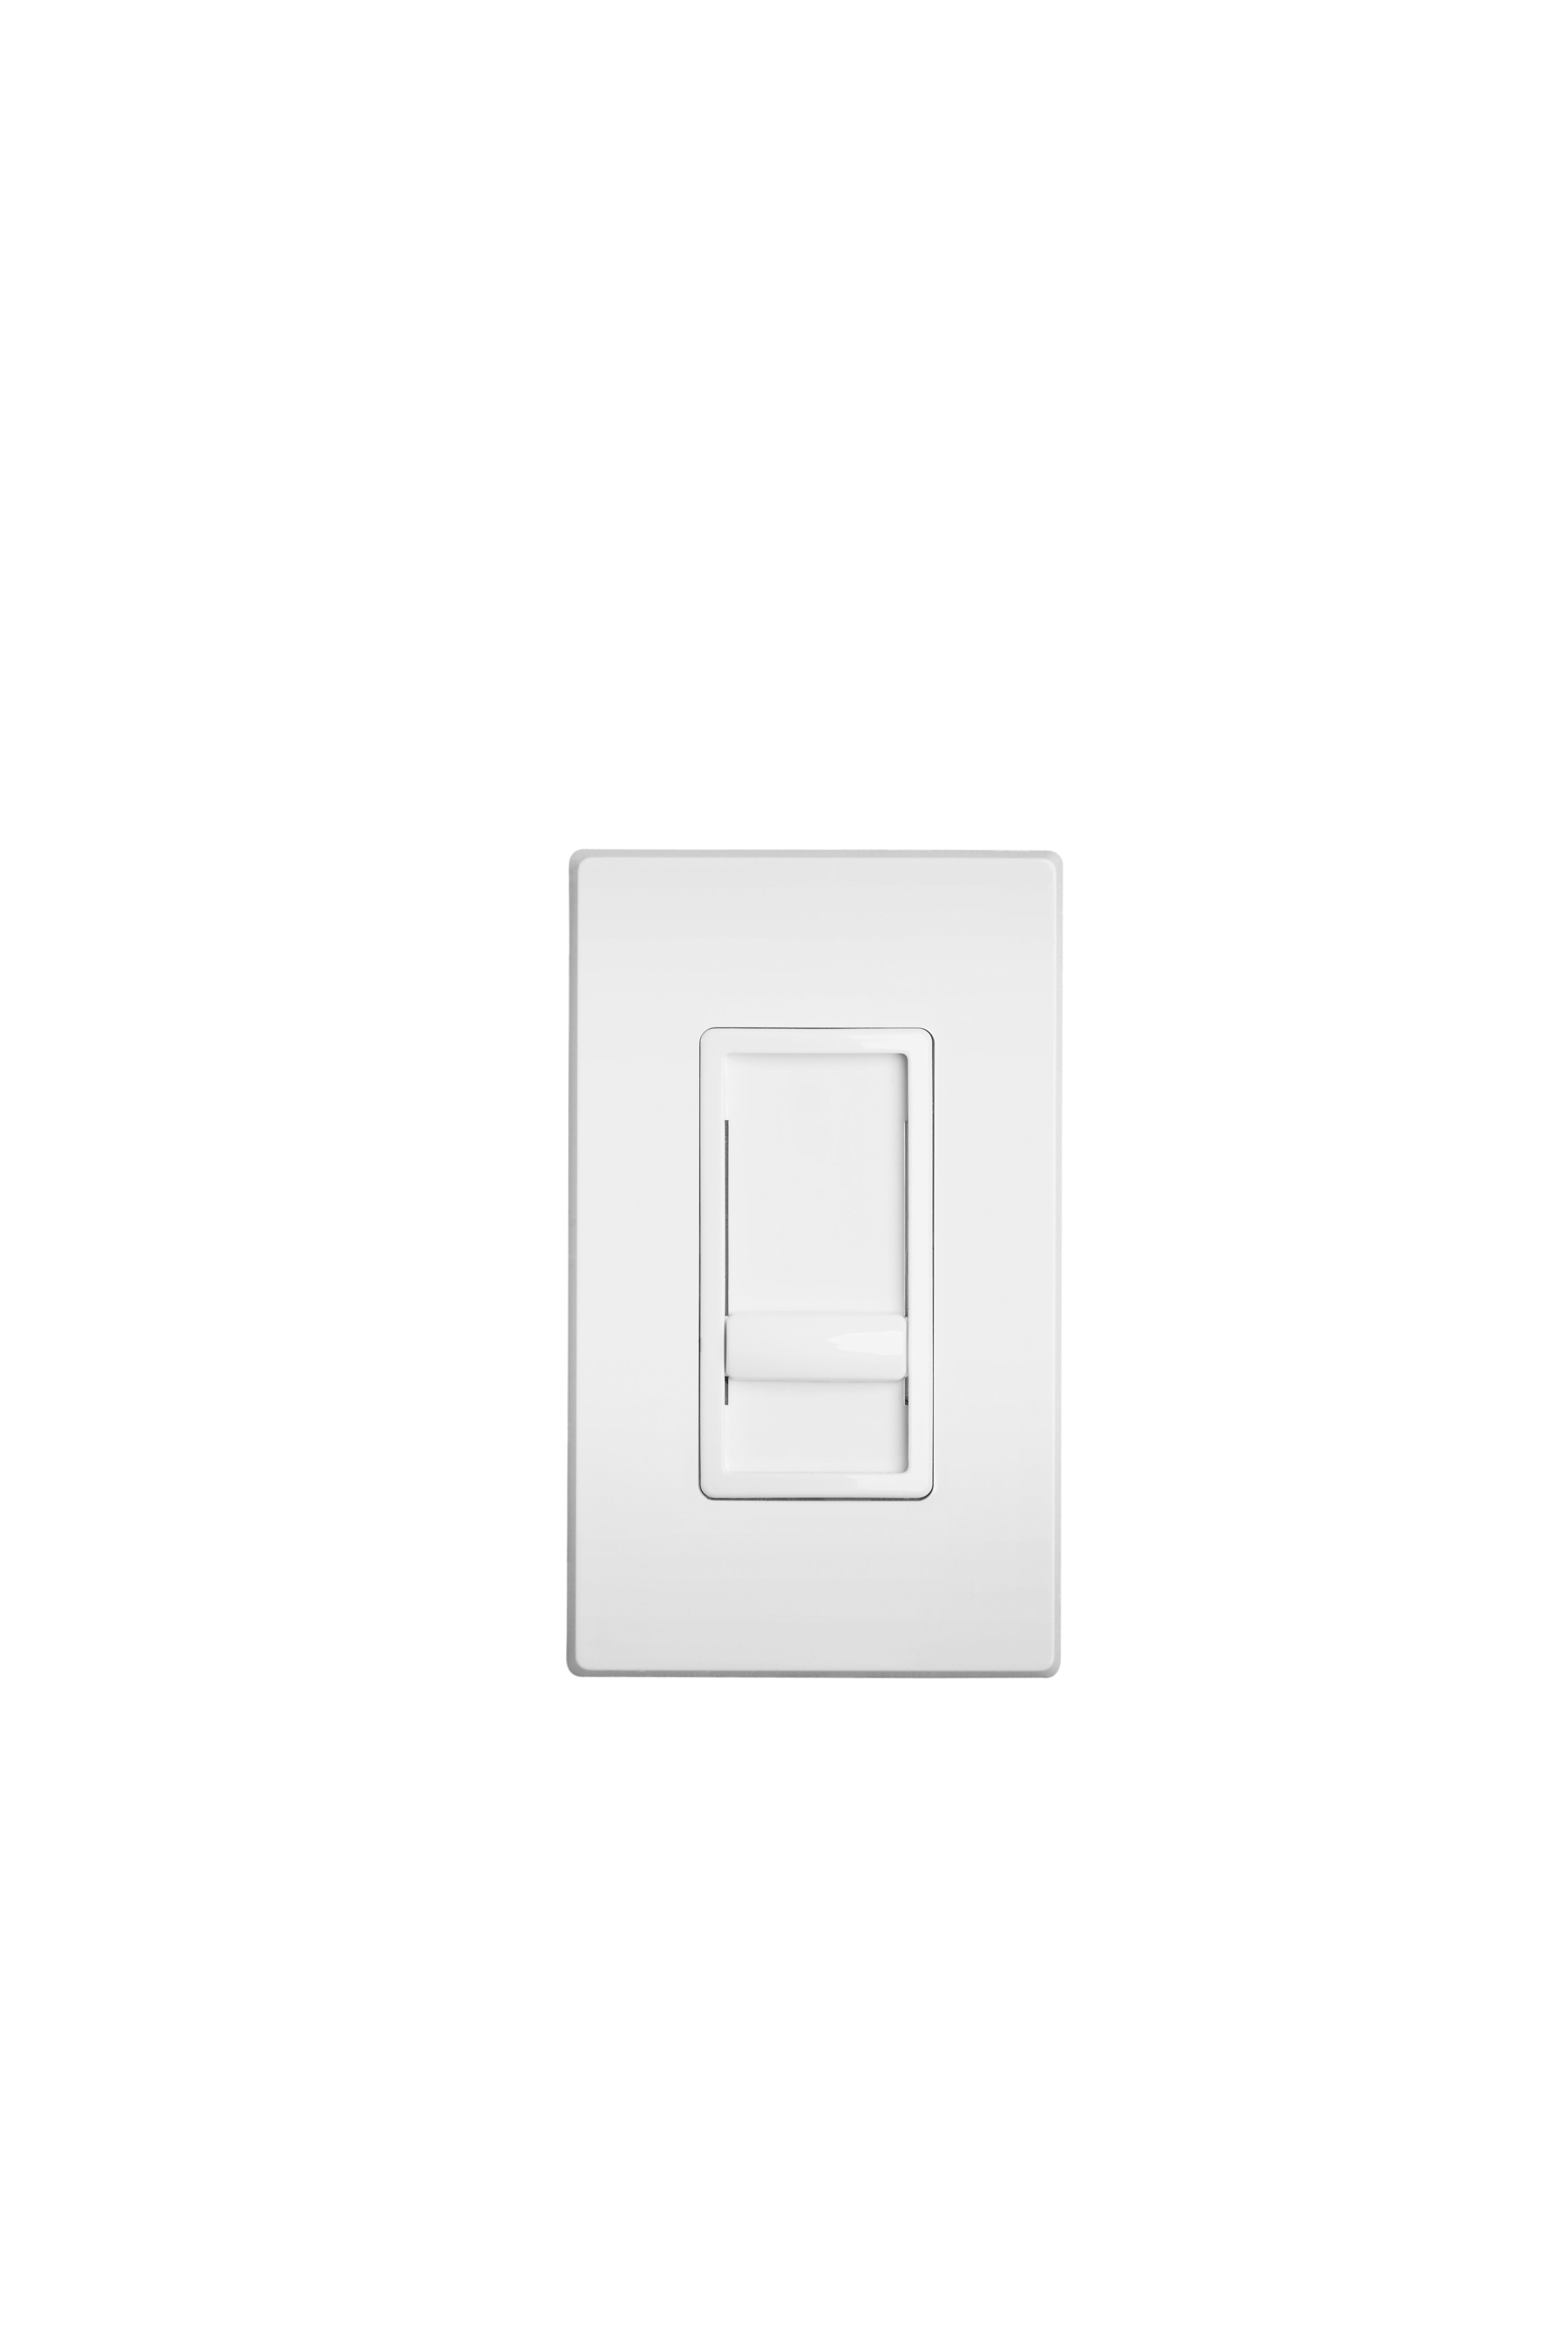 Dimmer Only